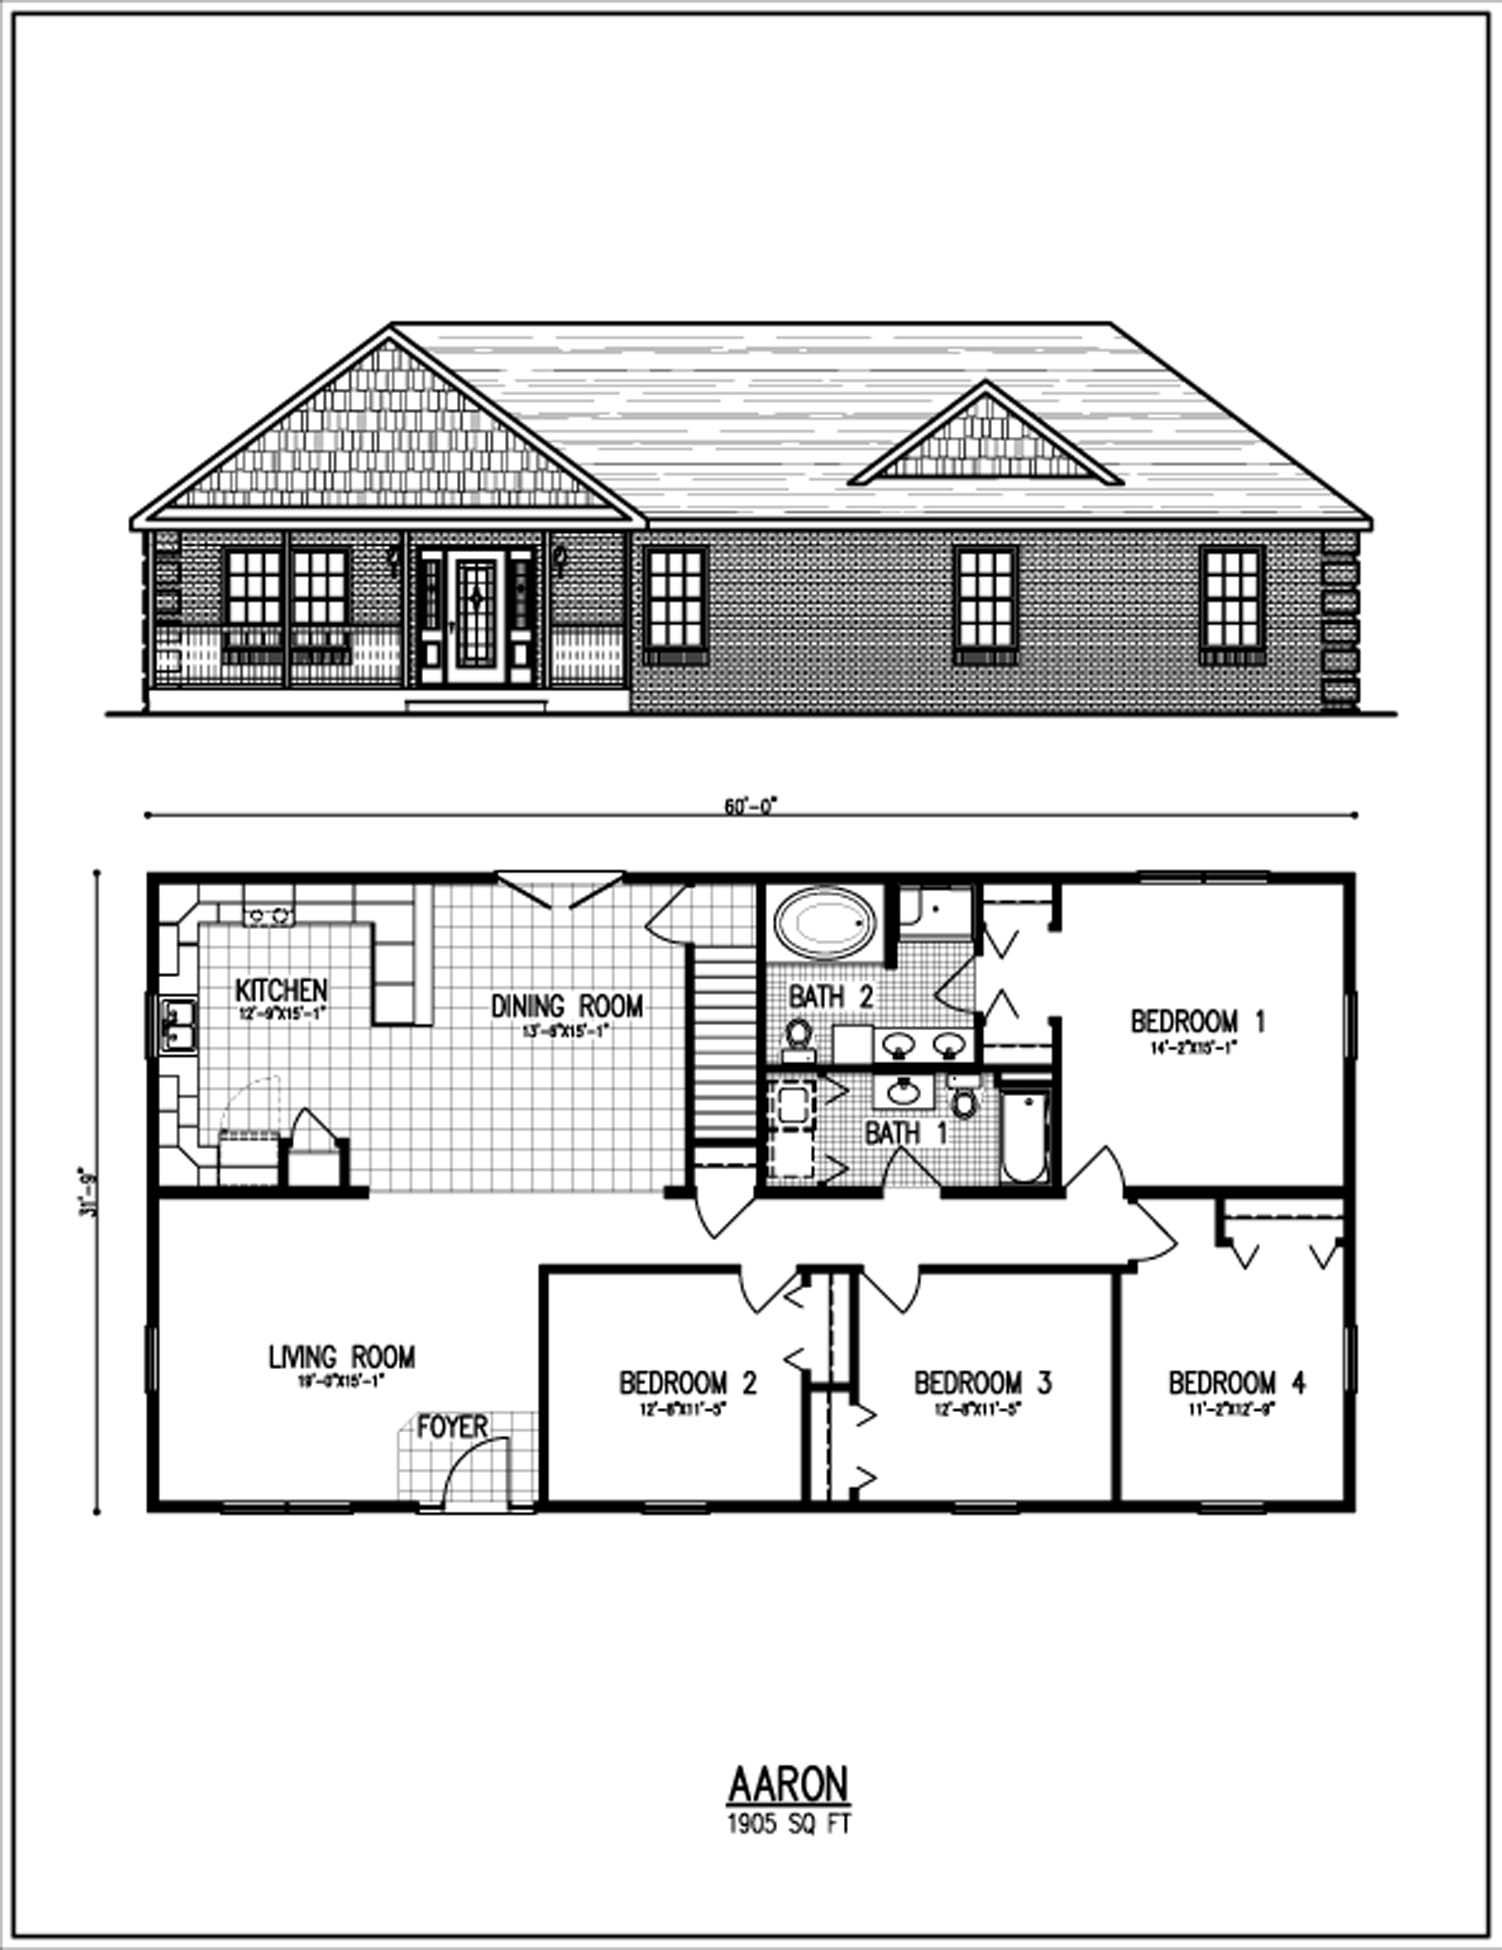 ranch floor plans all american homes floorplan center staffordcape - Ranch Style House Plans